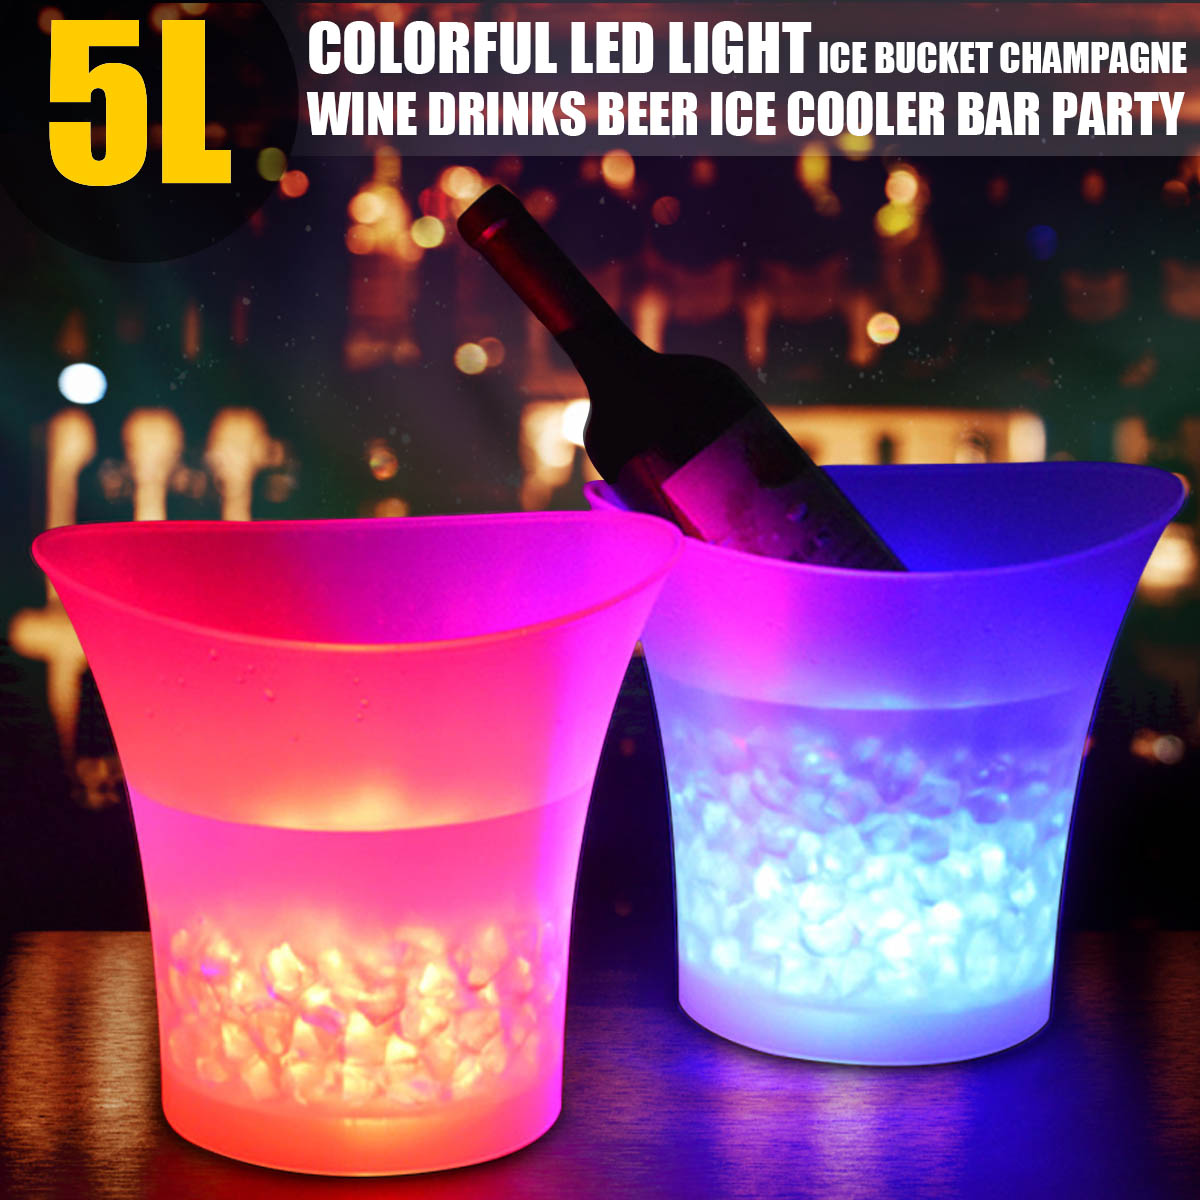 5L LED Light Ice Bucket Champagne Wine Drinks Beer Ice Cooler Bar Party Home Color Changing